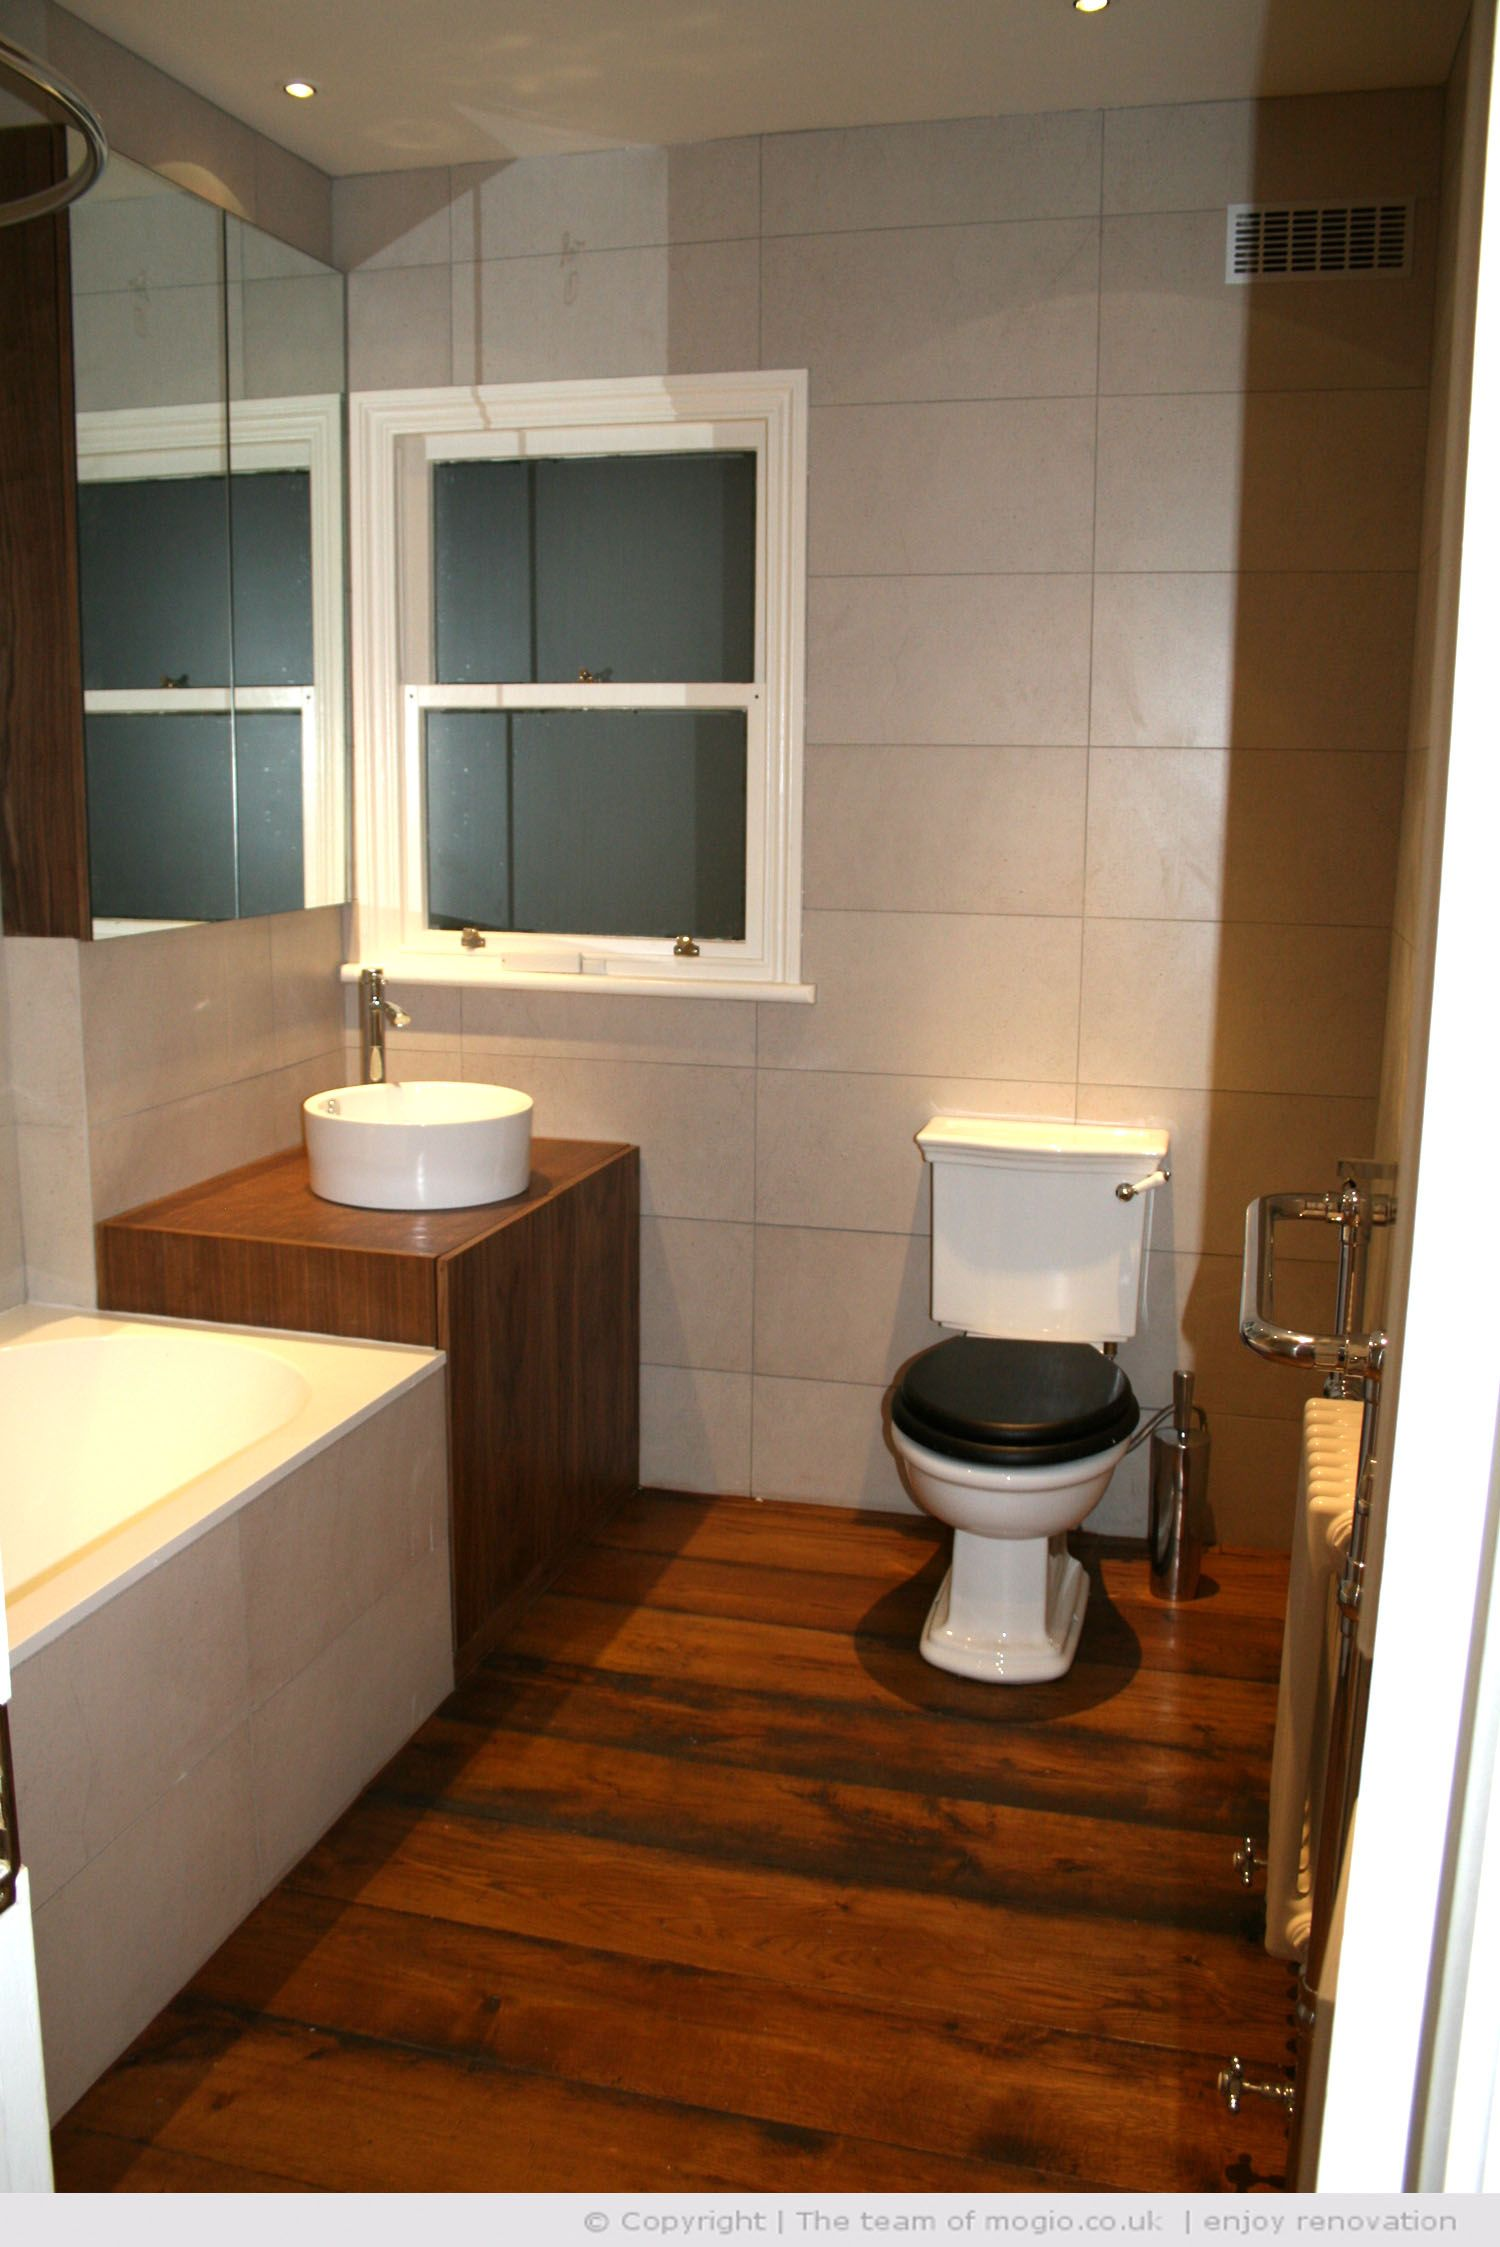 Bespoke Furniture Bathroom Fiting Wet Room Specialist London England